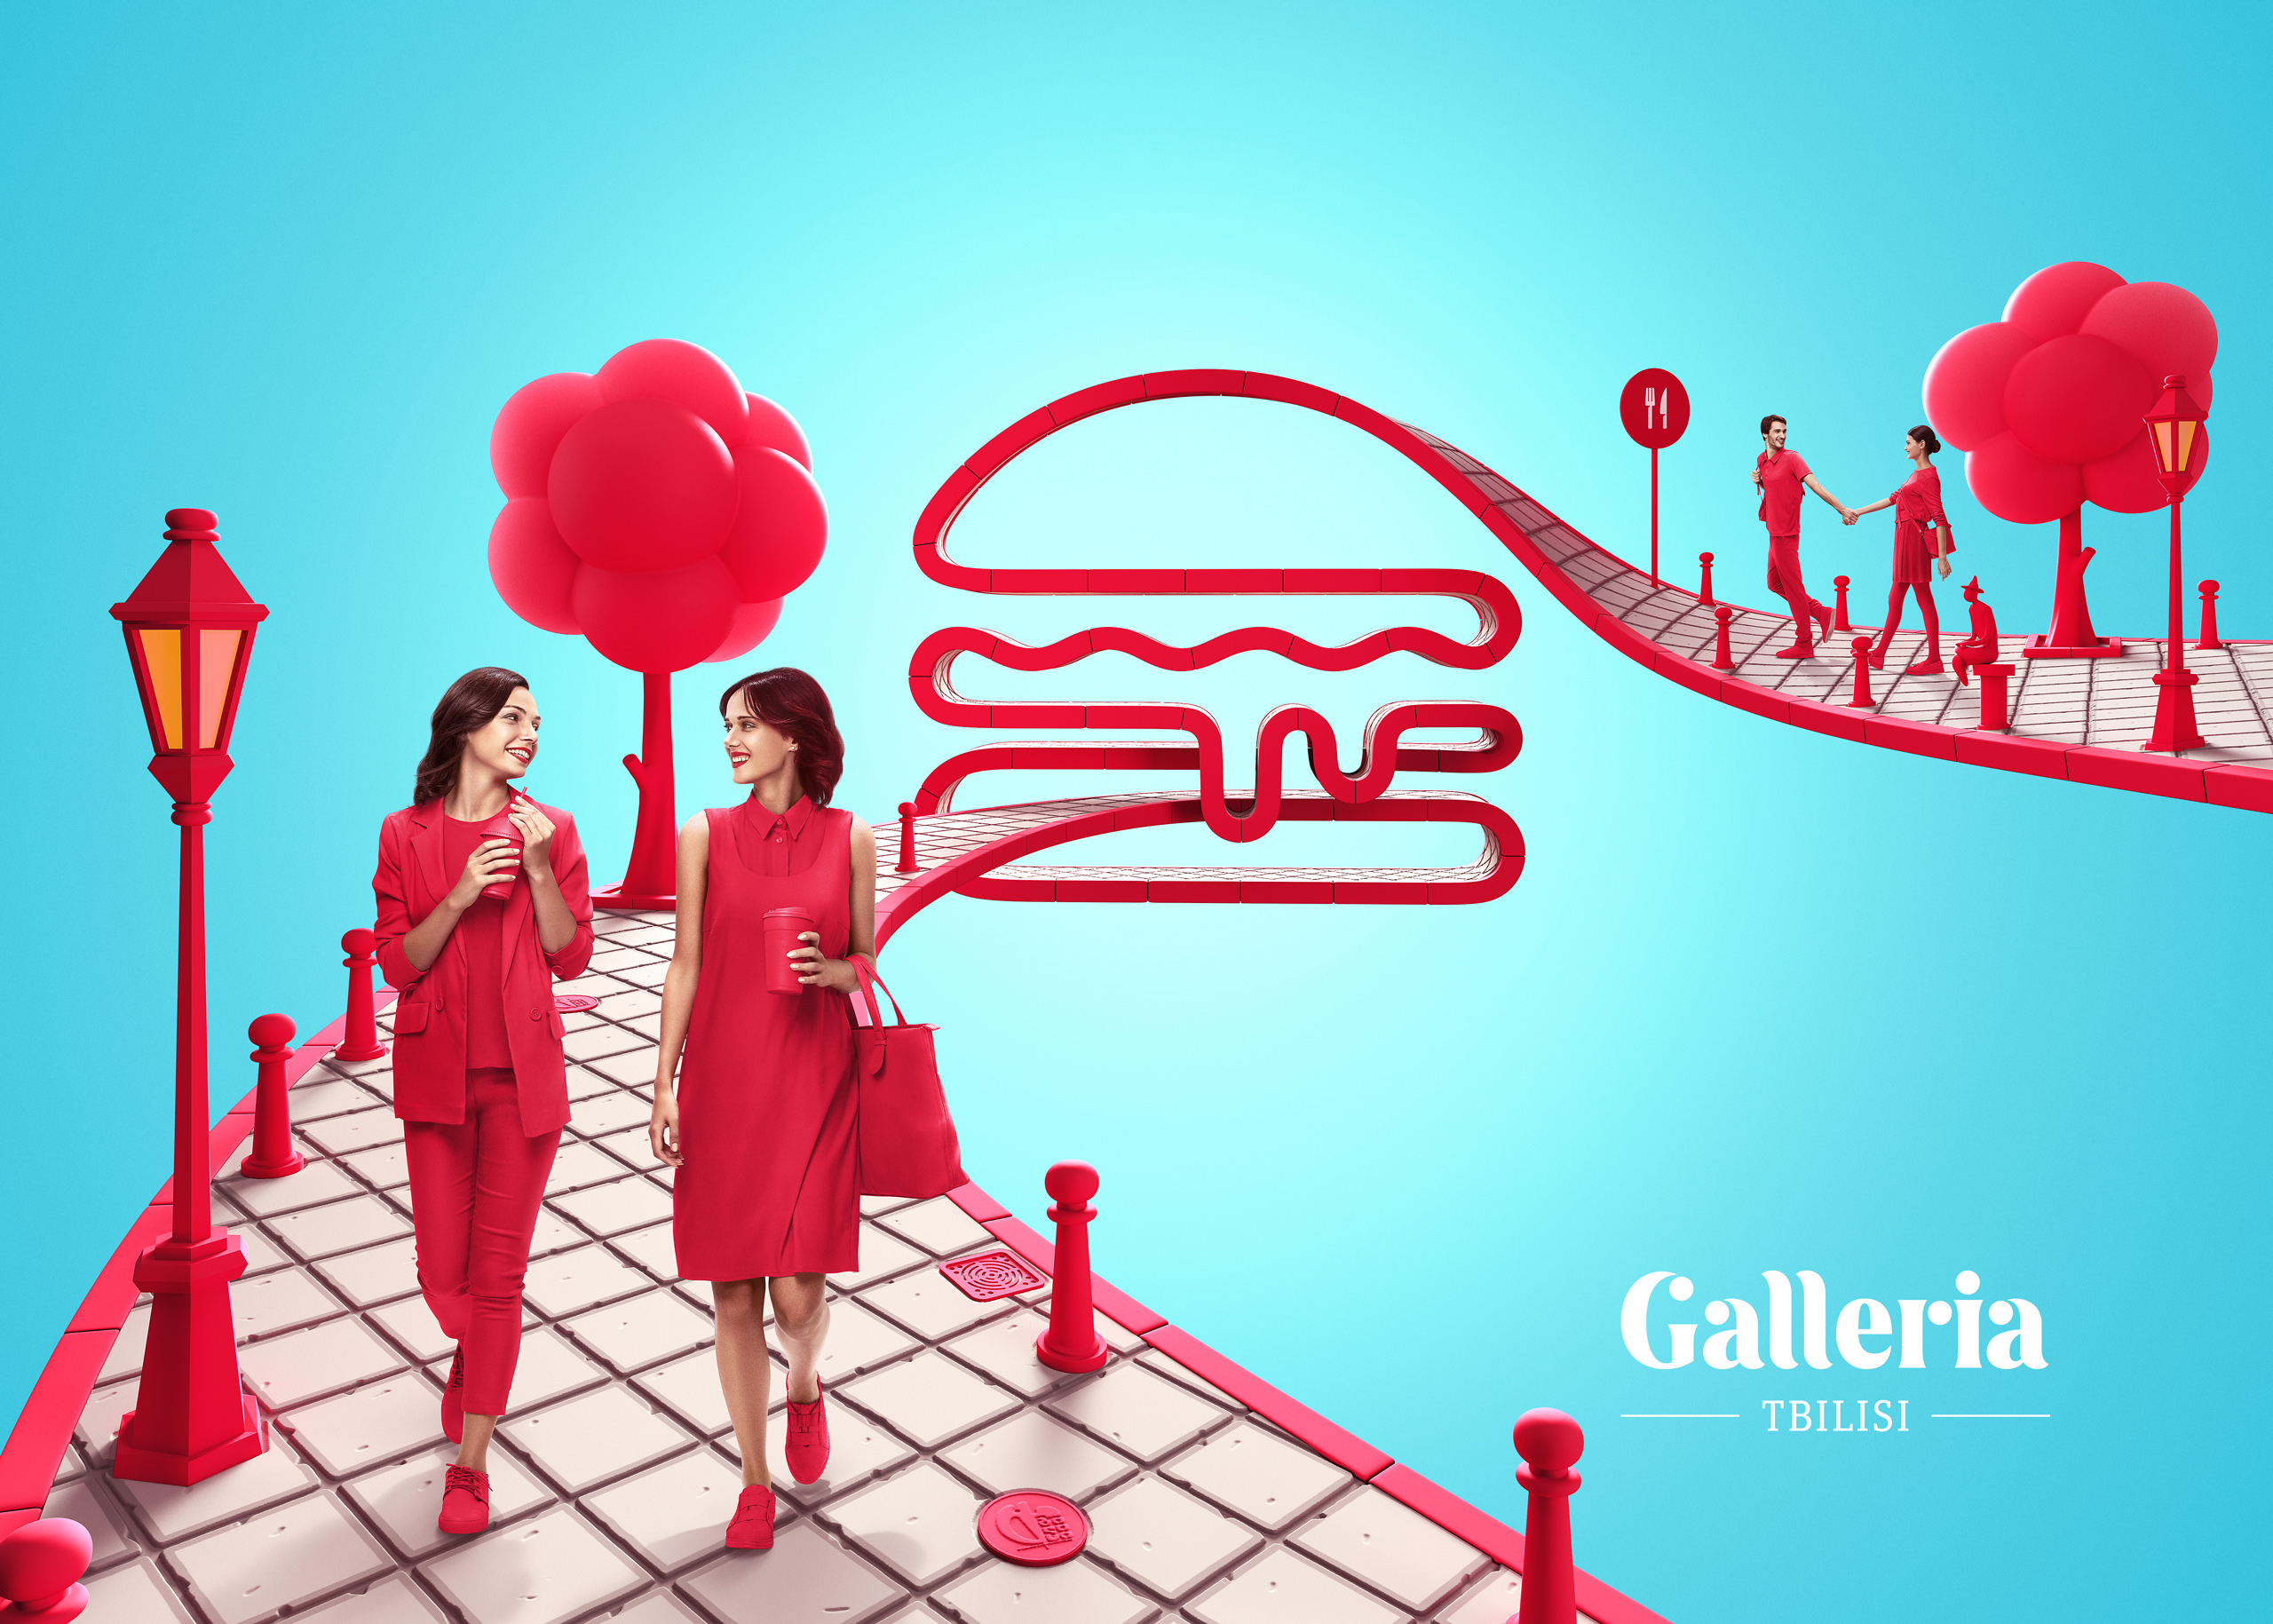 Galleria_Food_NonCrop_w2560_quality85